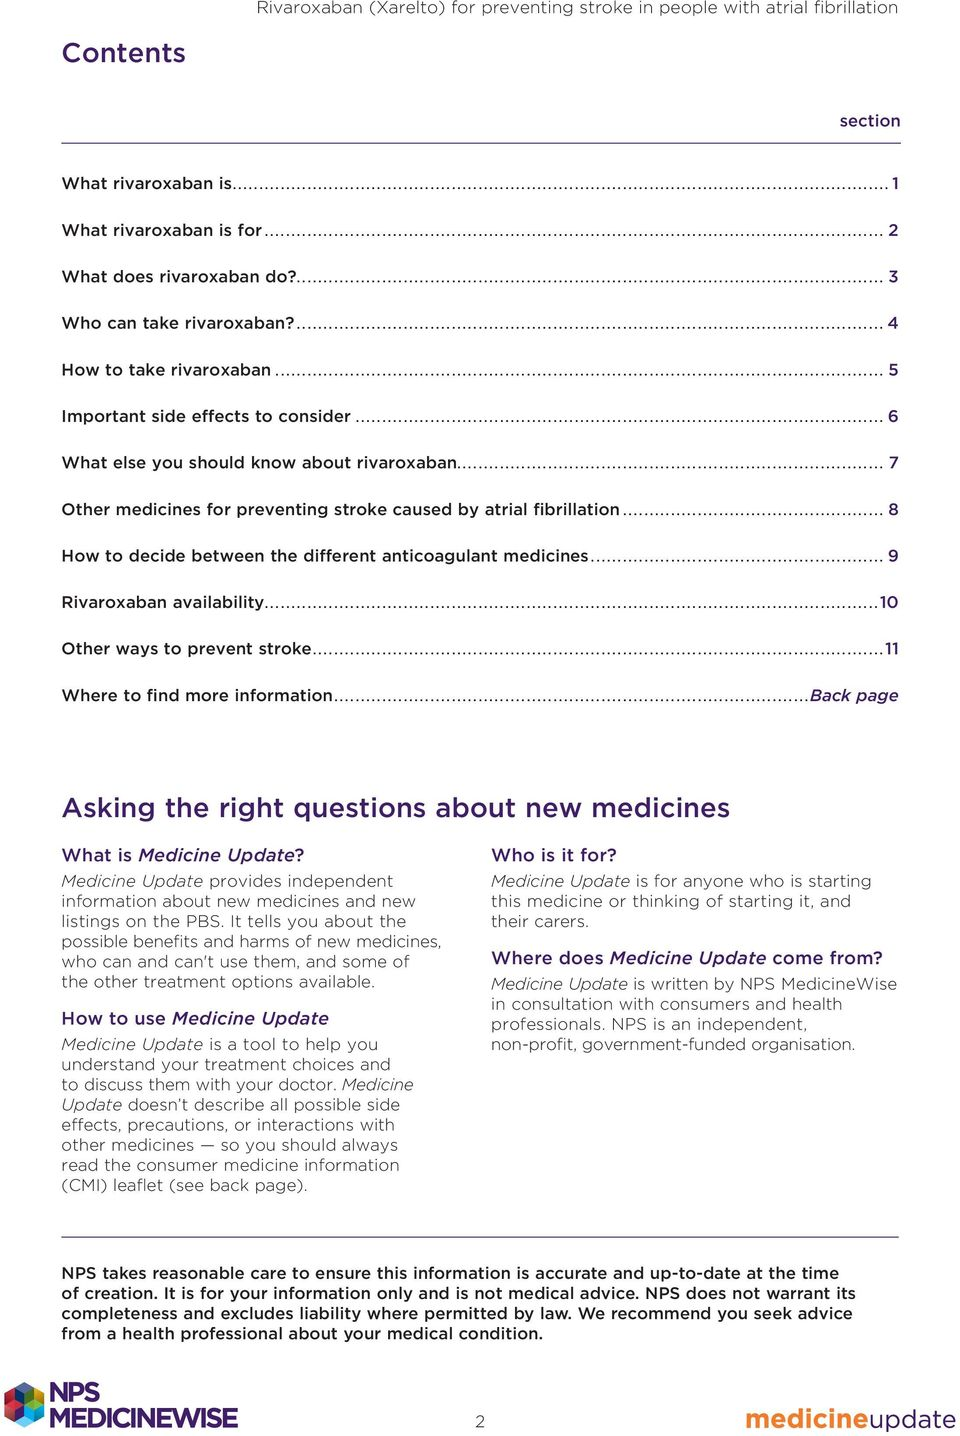 .. 9 Rivaroxaban availability...10 Other ways to prevent stroke...11 Where to find more information...back page Asking the right questions about new medicines What is Medicine Update?